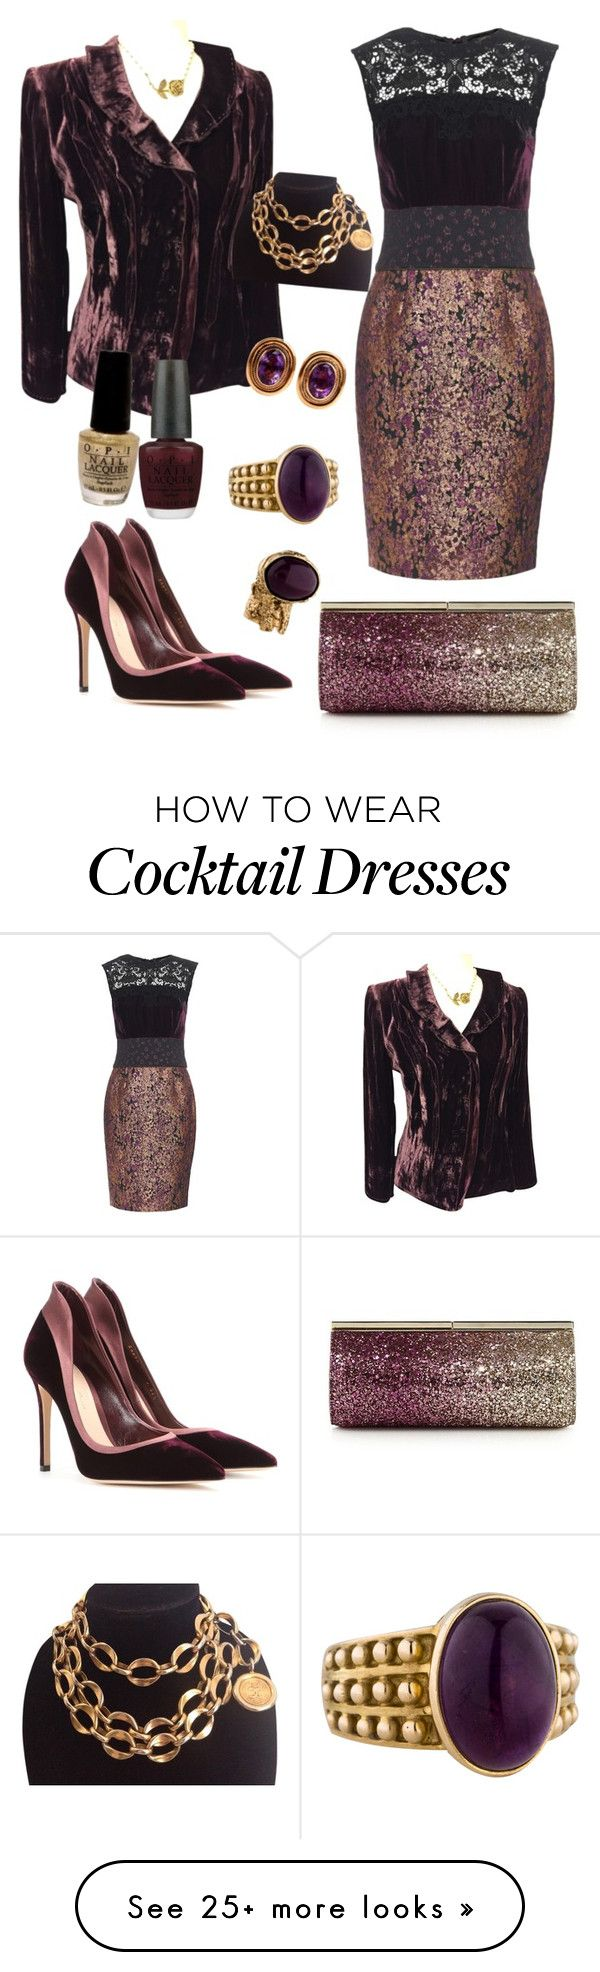 """Velvet Eggplant"" by angelicus143 on Polyvore featuring Gianvito Rossi, Sophie Theallet, Elie Tahari, Yves Saint Laurent, Jimmy Choo, OPI, Chanel, women's clothing, women's fashion and women"